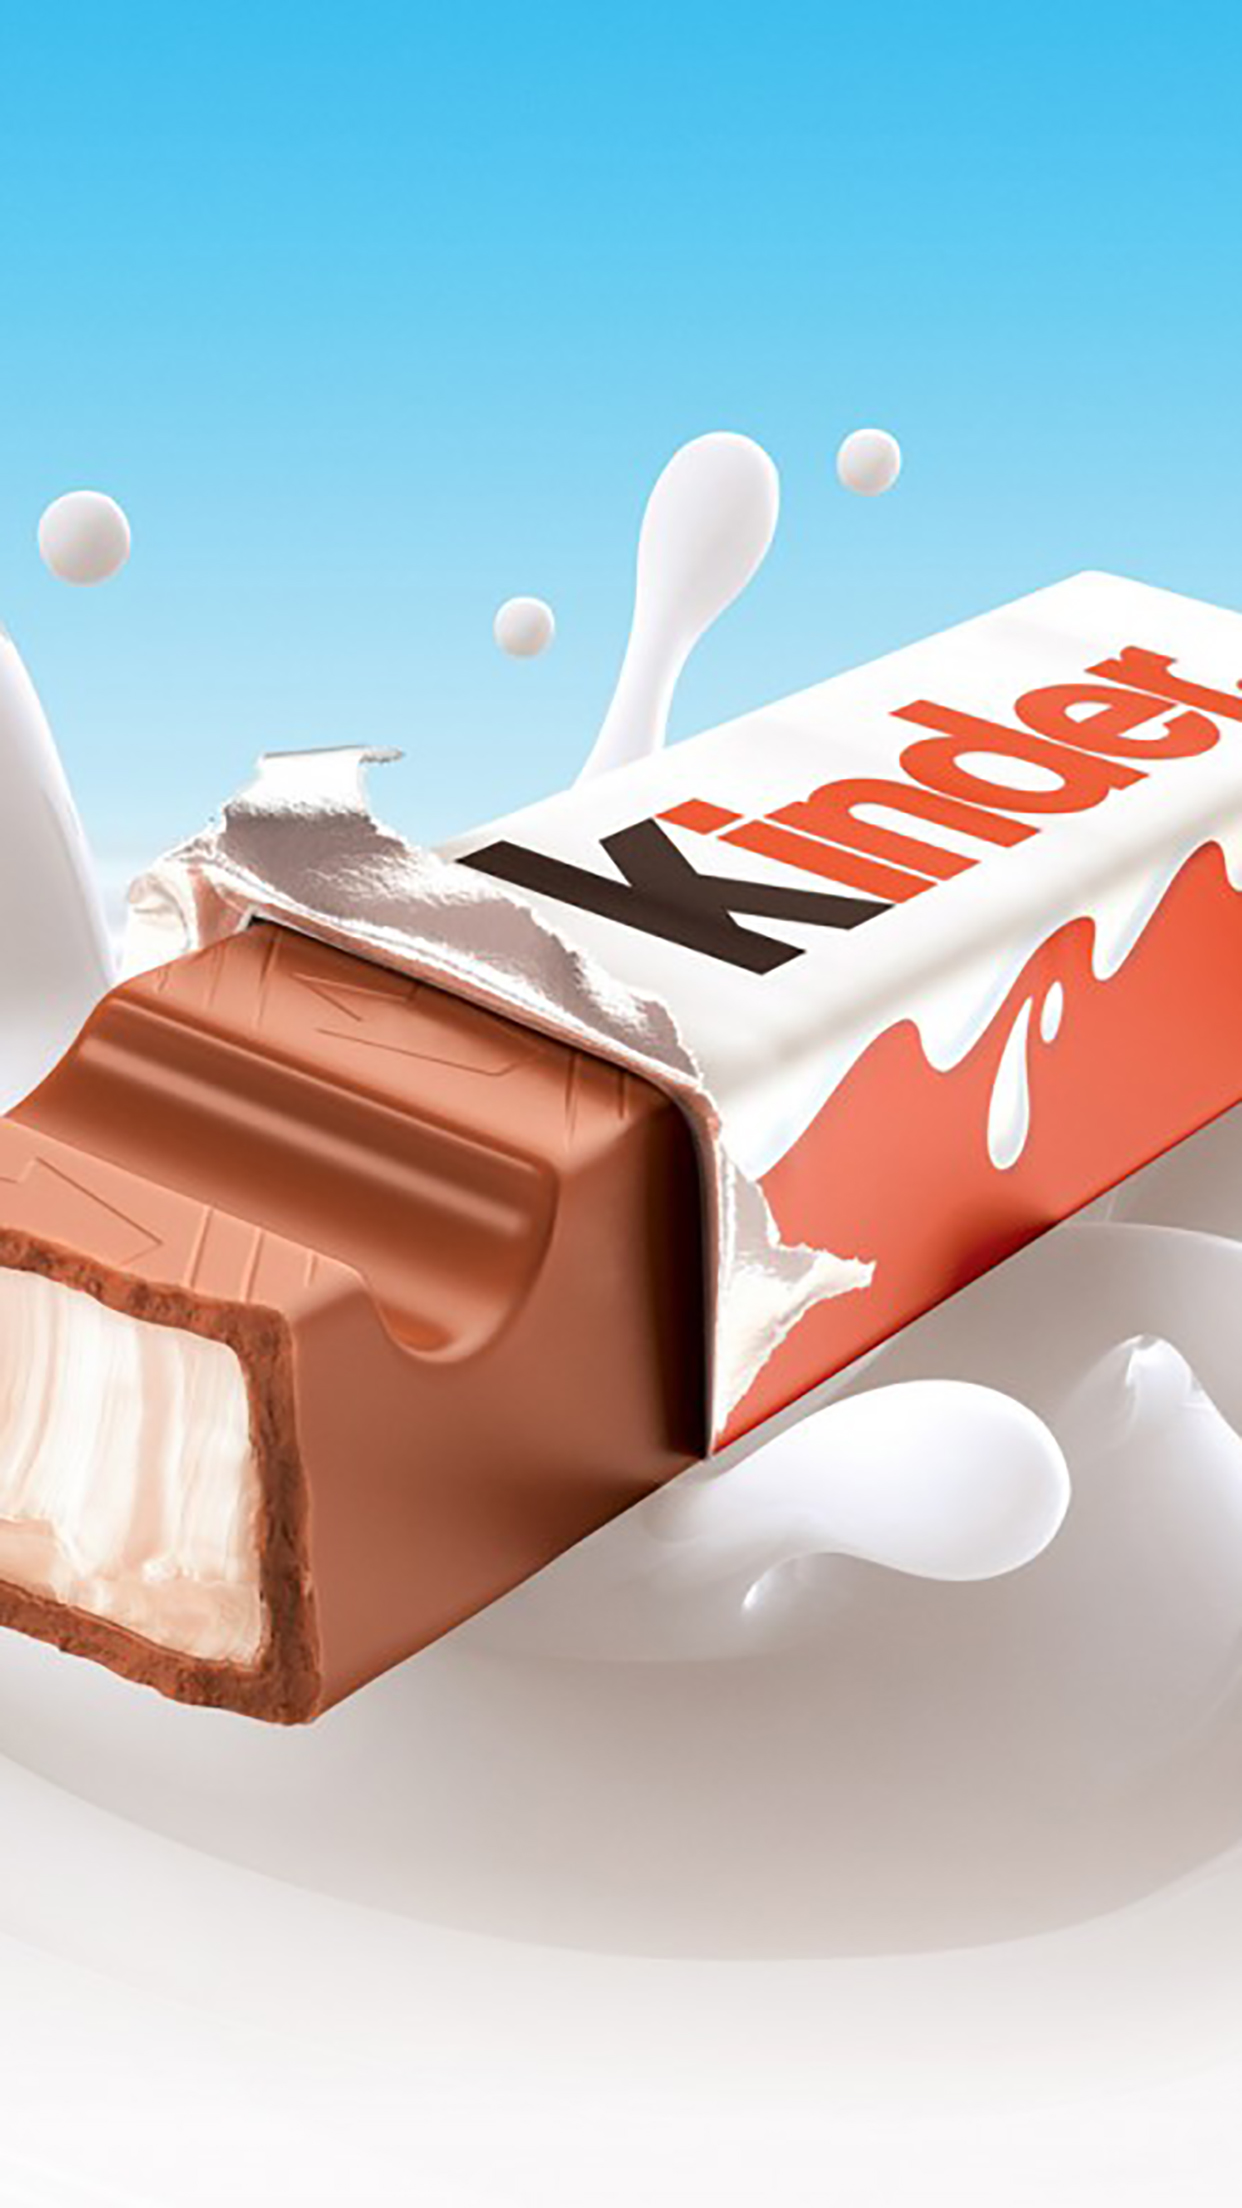 Kinder chocolate 3Wallpapers iPhone Parallax Kinder chocolate